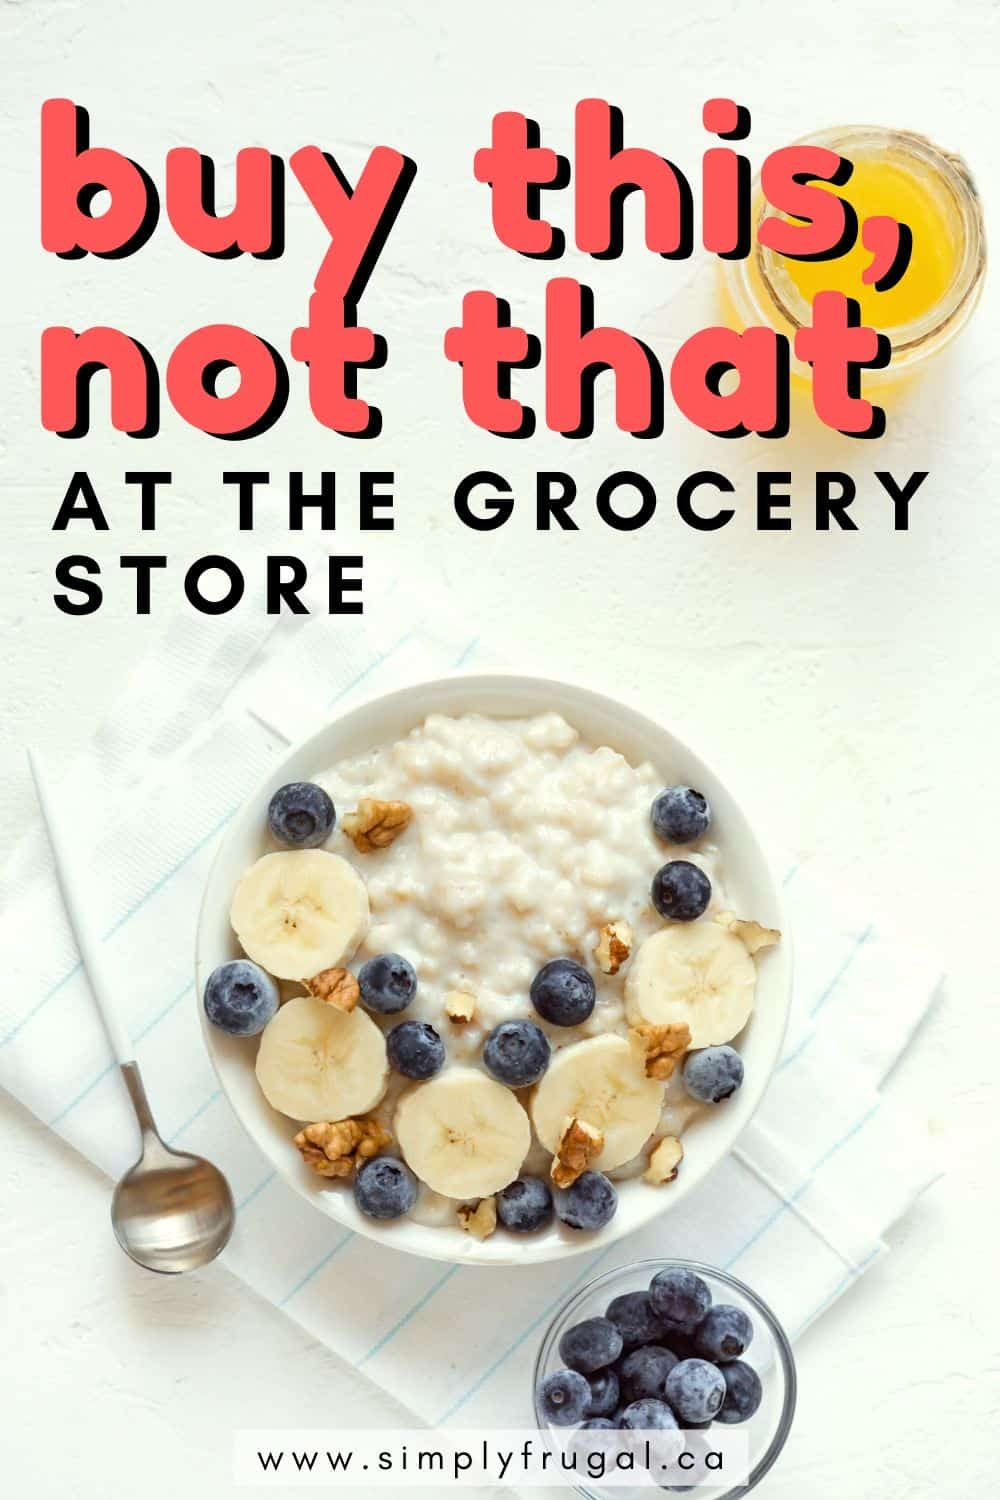 Buy this, not that! Here are 8 grocery items you can buy to replace their costly, less healthful counterparts.